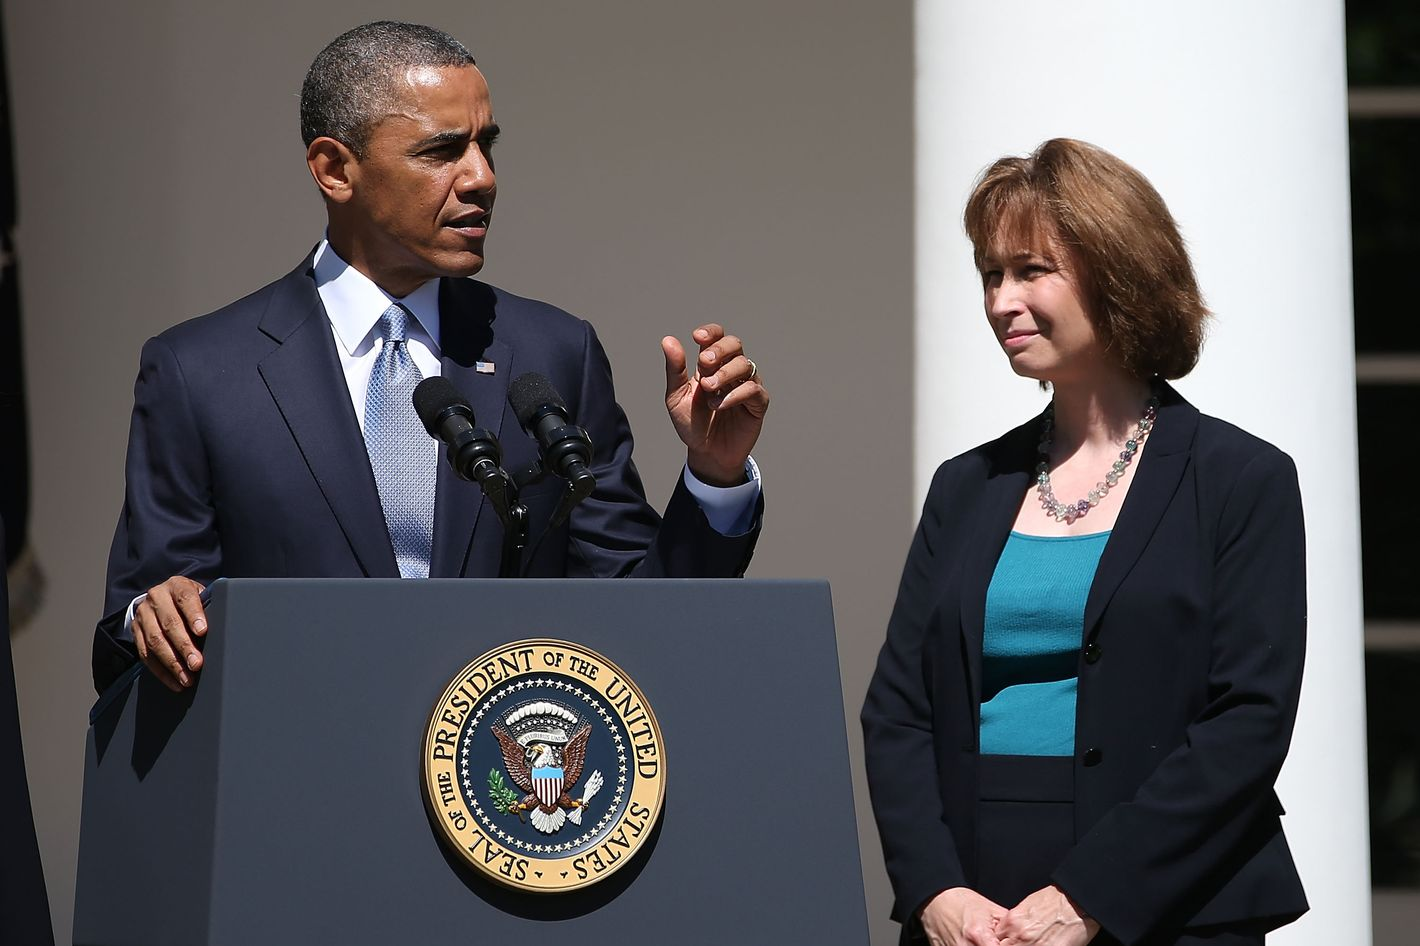 WASHINGTON, DC - JUNE 04:  U.S. President Barack Obama gestures while nominating Patricia Ann Millett (R), an appellate lawyer, to become a federal judge, during an event in the Rose Garden at the White House June 4, 2013 in Washington, DC. If confirmed by the U.S. Senate the three nominees will fill three vacancies on United States Court of Appeals for the District of Columbia.  (Photo by Mark Wilson/Getty Images)